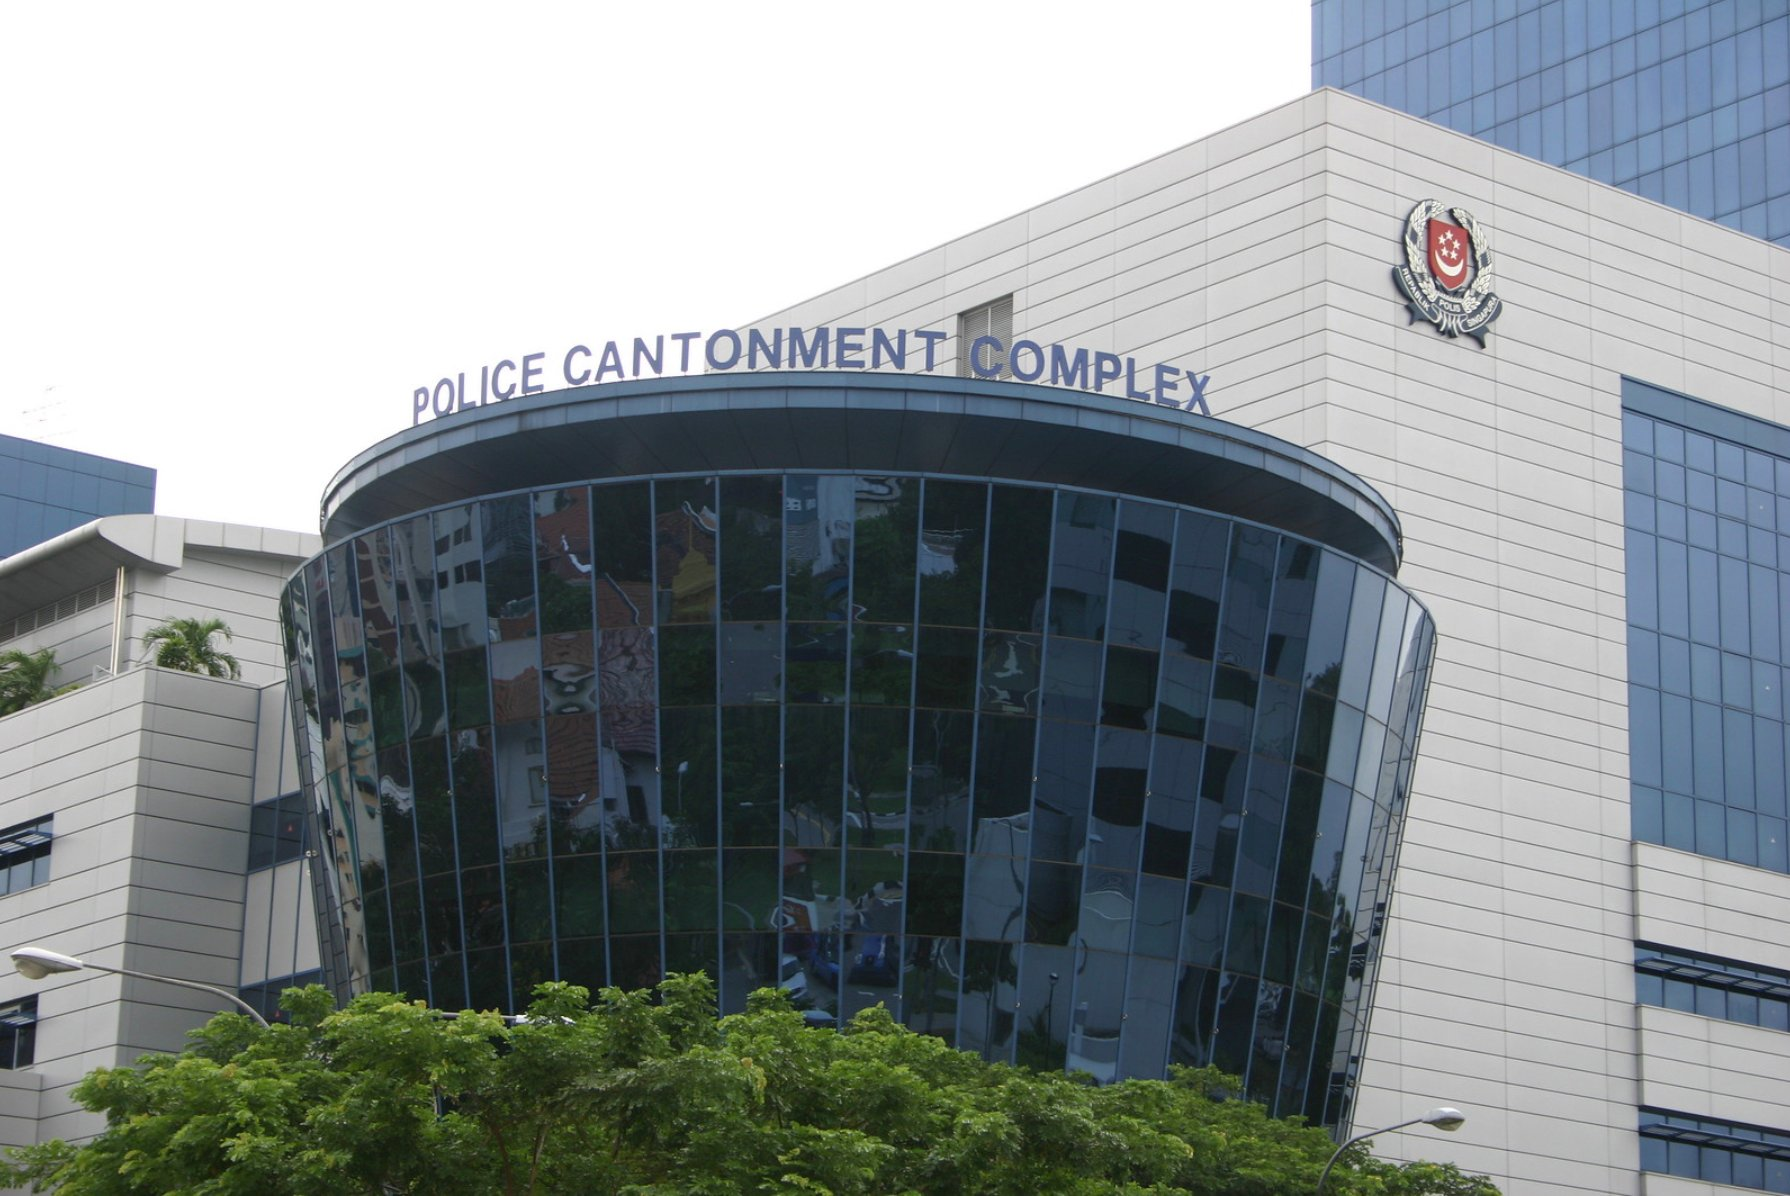 Police cantonment complex 2